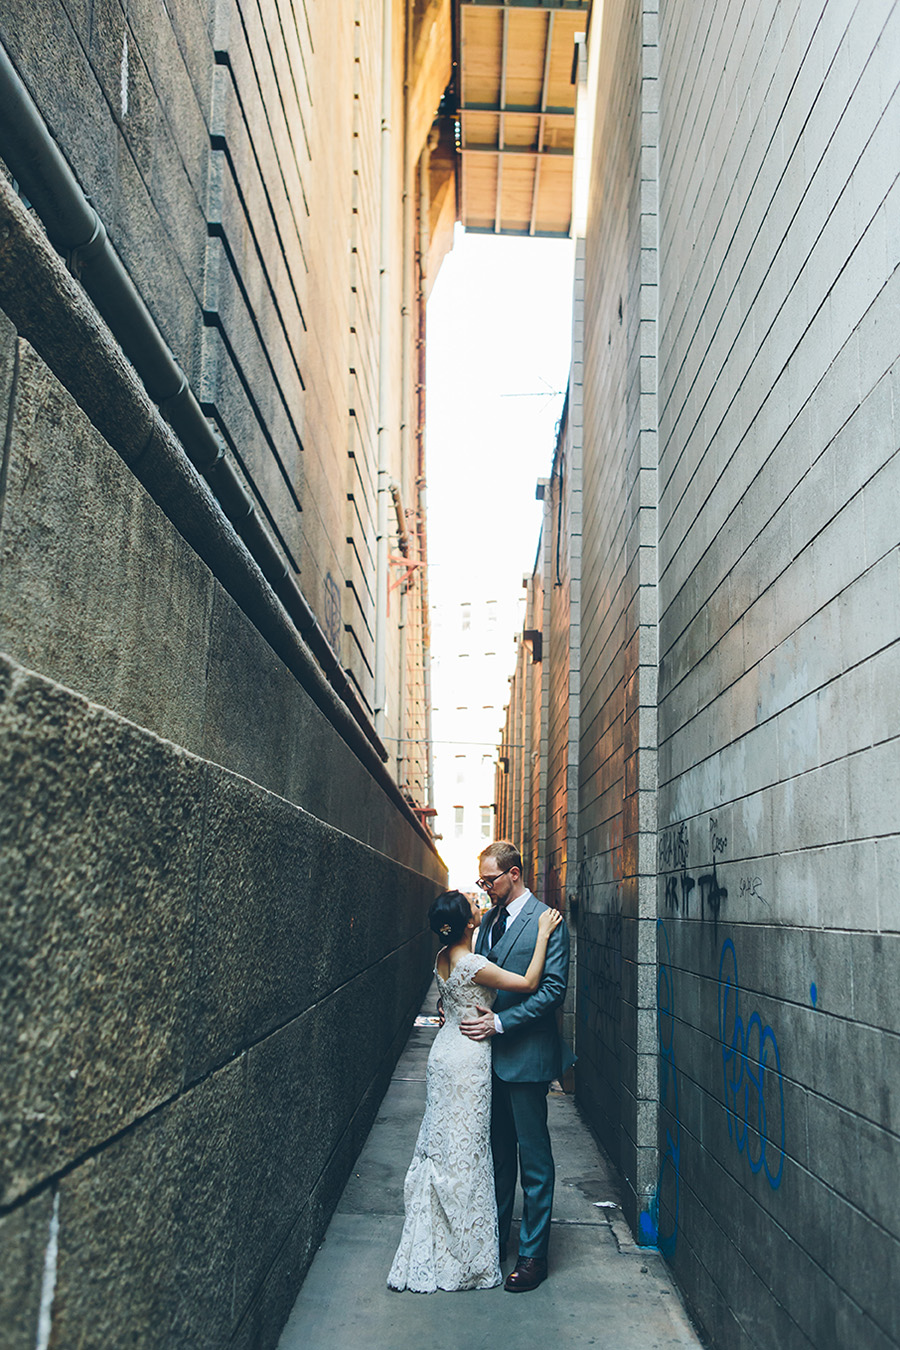 NEW-YORK-CITY-WEDDING-PHOTOGRAPHER-VINEGAR-HILL-HOUSE-INTIMATE-DUMBO-WEDDING-ELOPEMENT-MANHATTAN-BROOKLYN-WEDDING-PHOTOGRAPHY-0015.jpg